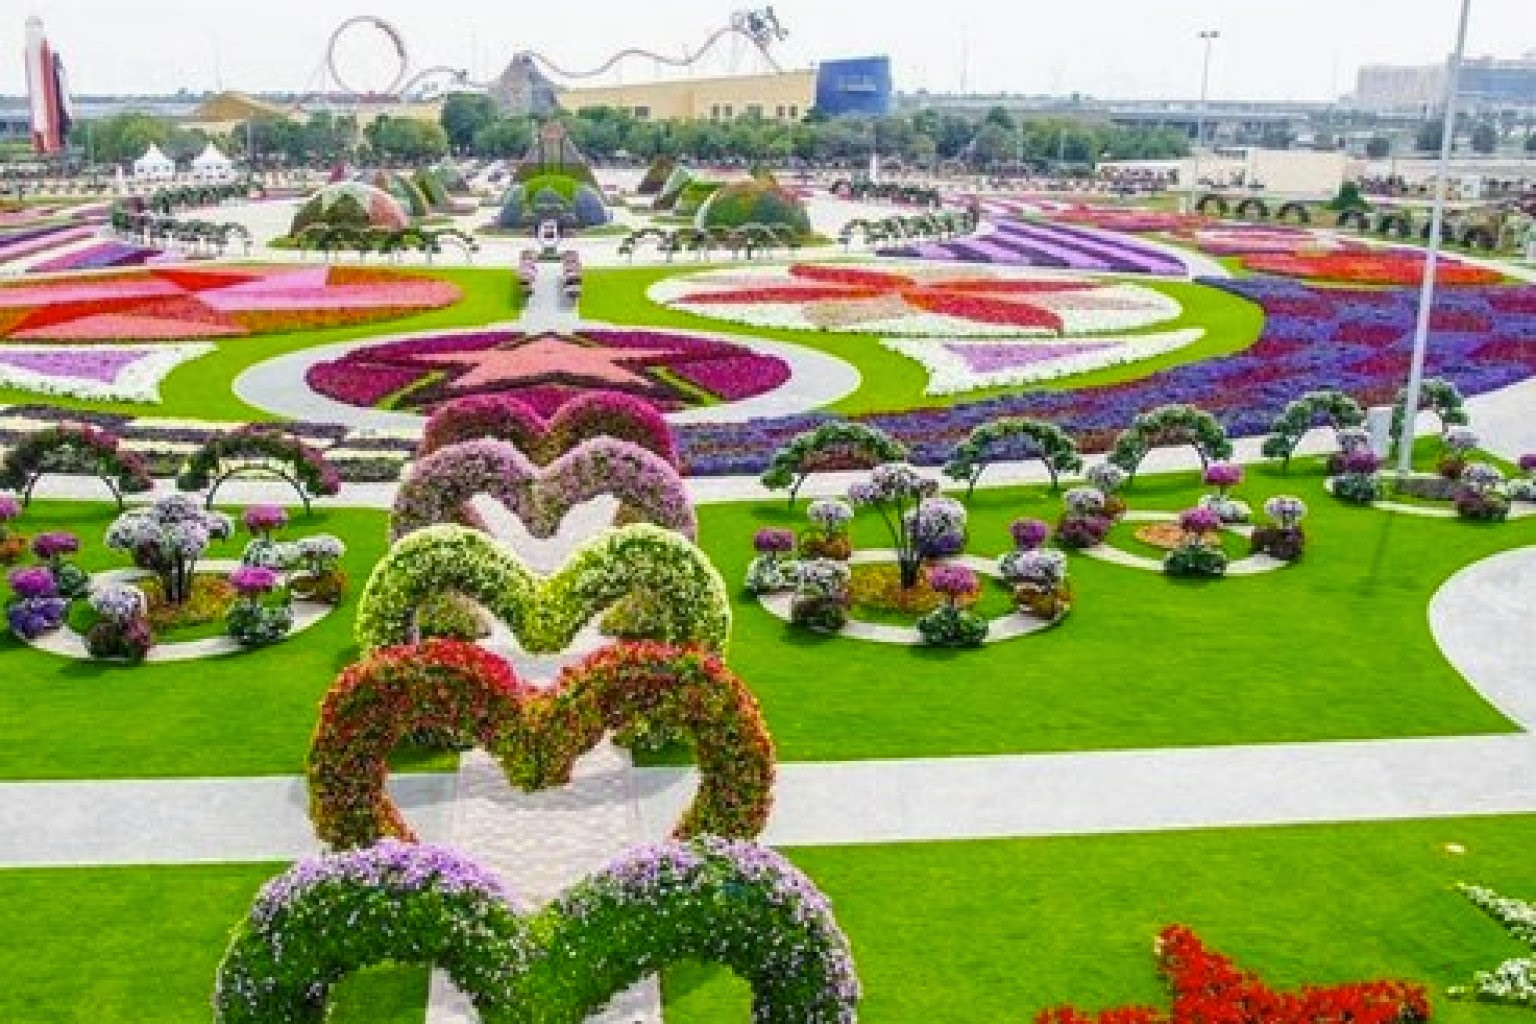 The Most Amazing Garden In The World Dubai Miracle